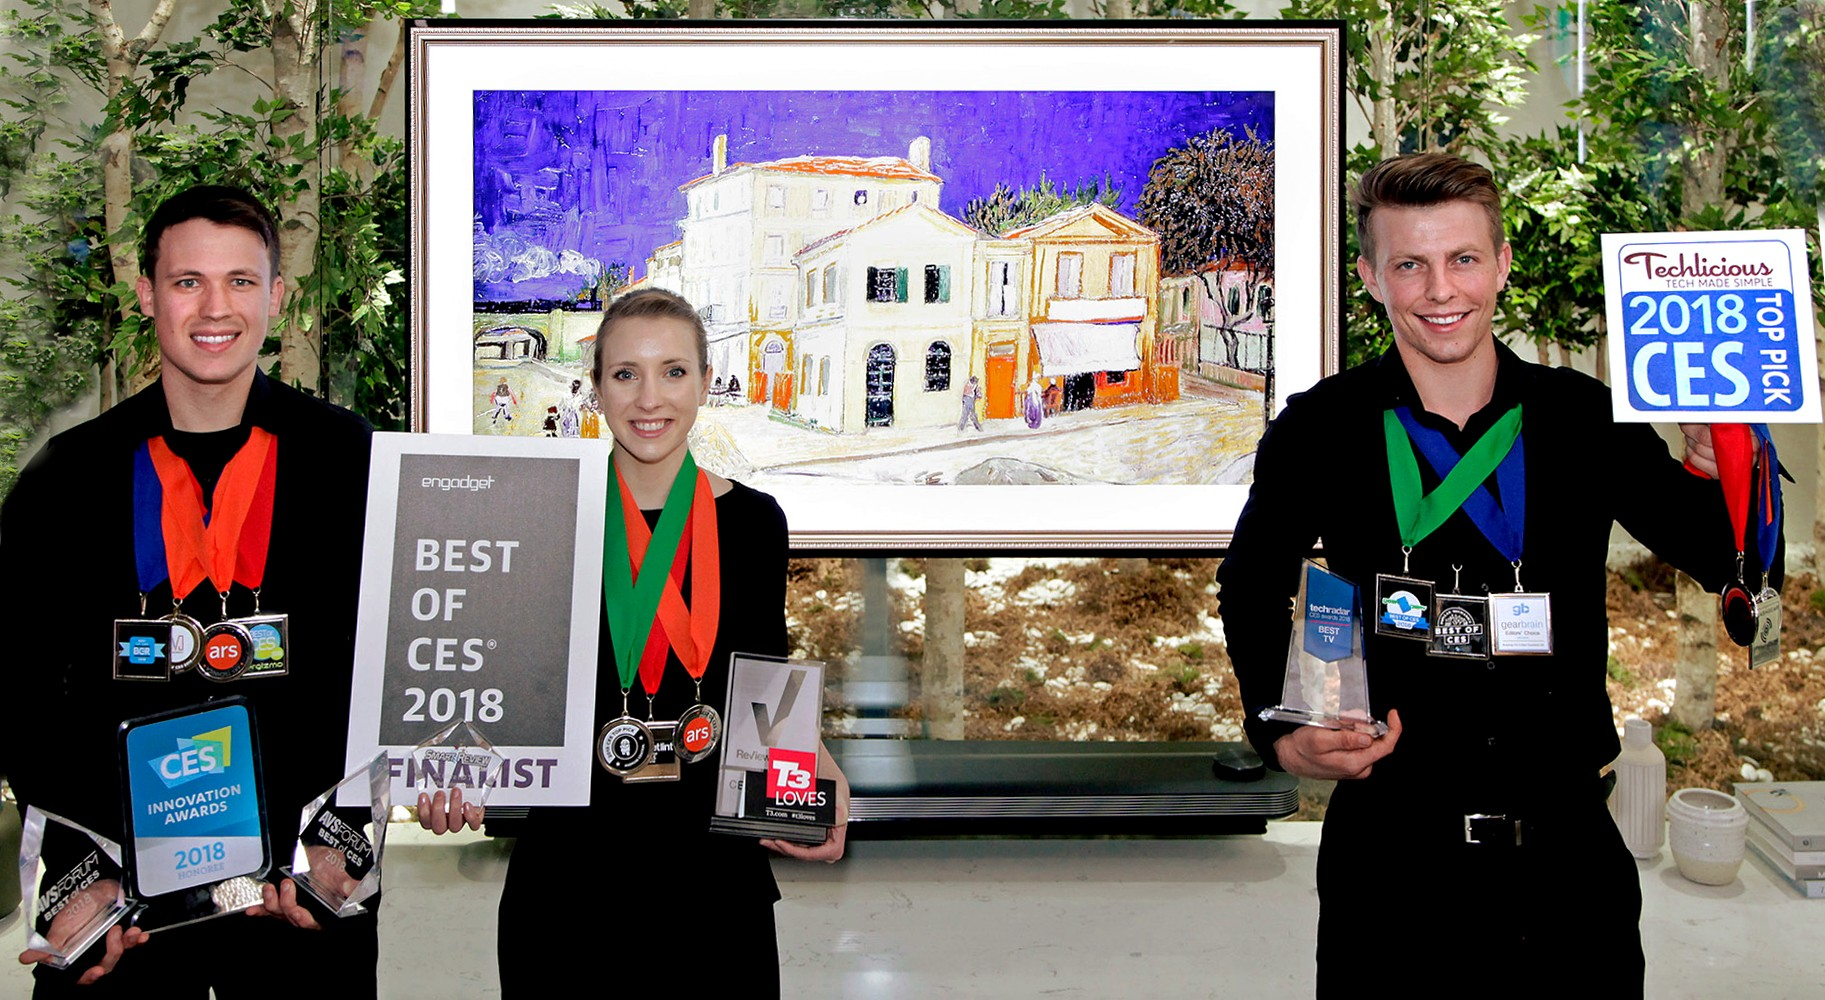 Models pose with the awards from Engadget, T3, Techlicious and more after LG won Best TV product honors at CES 2018.